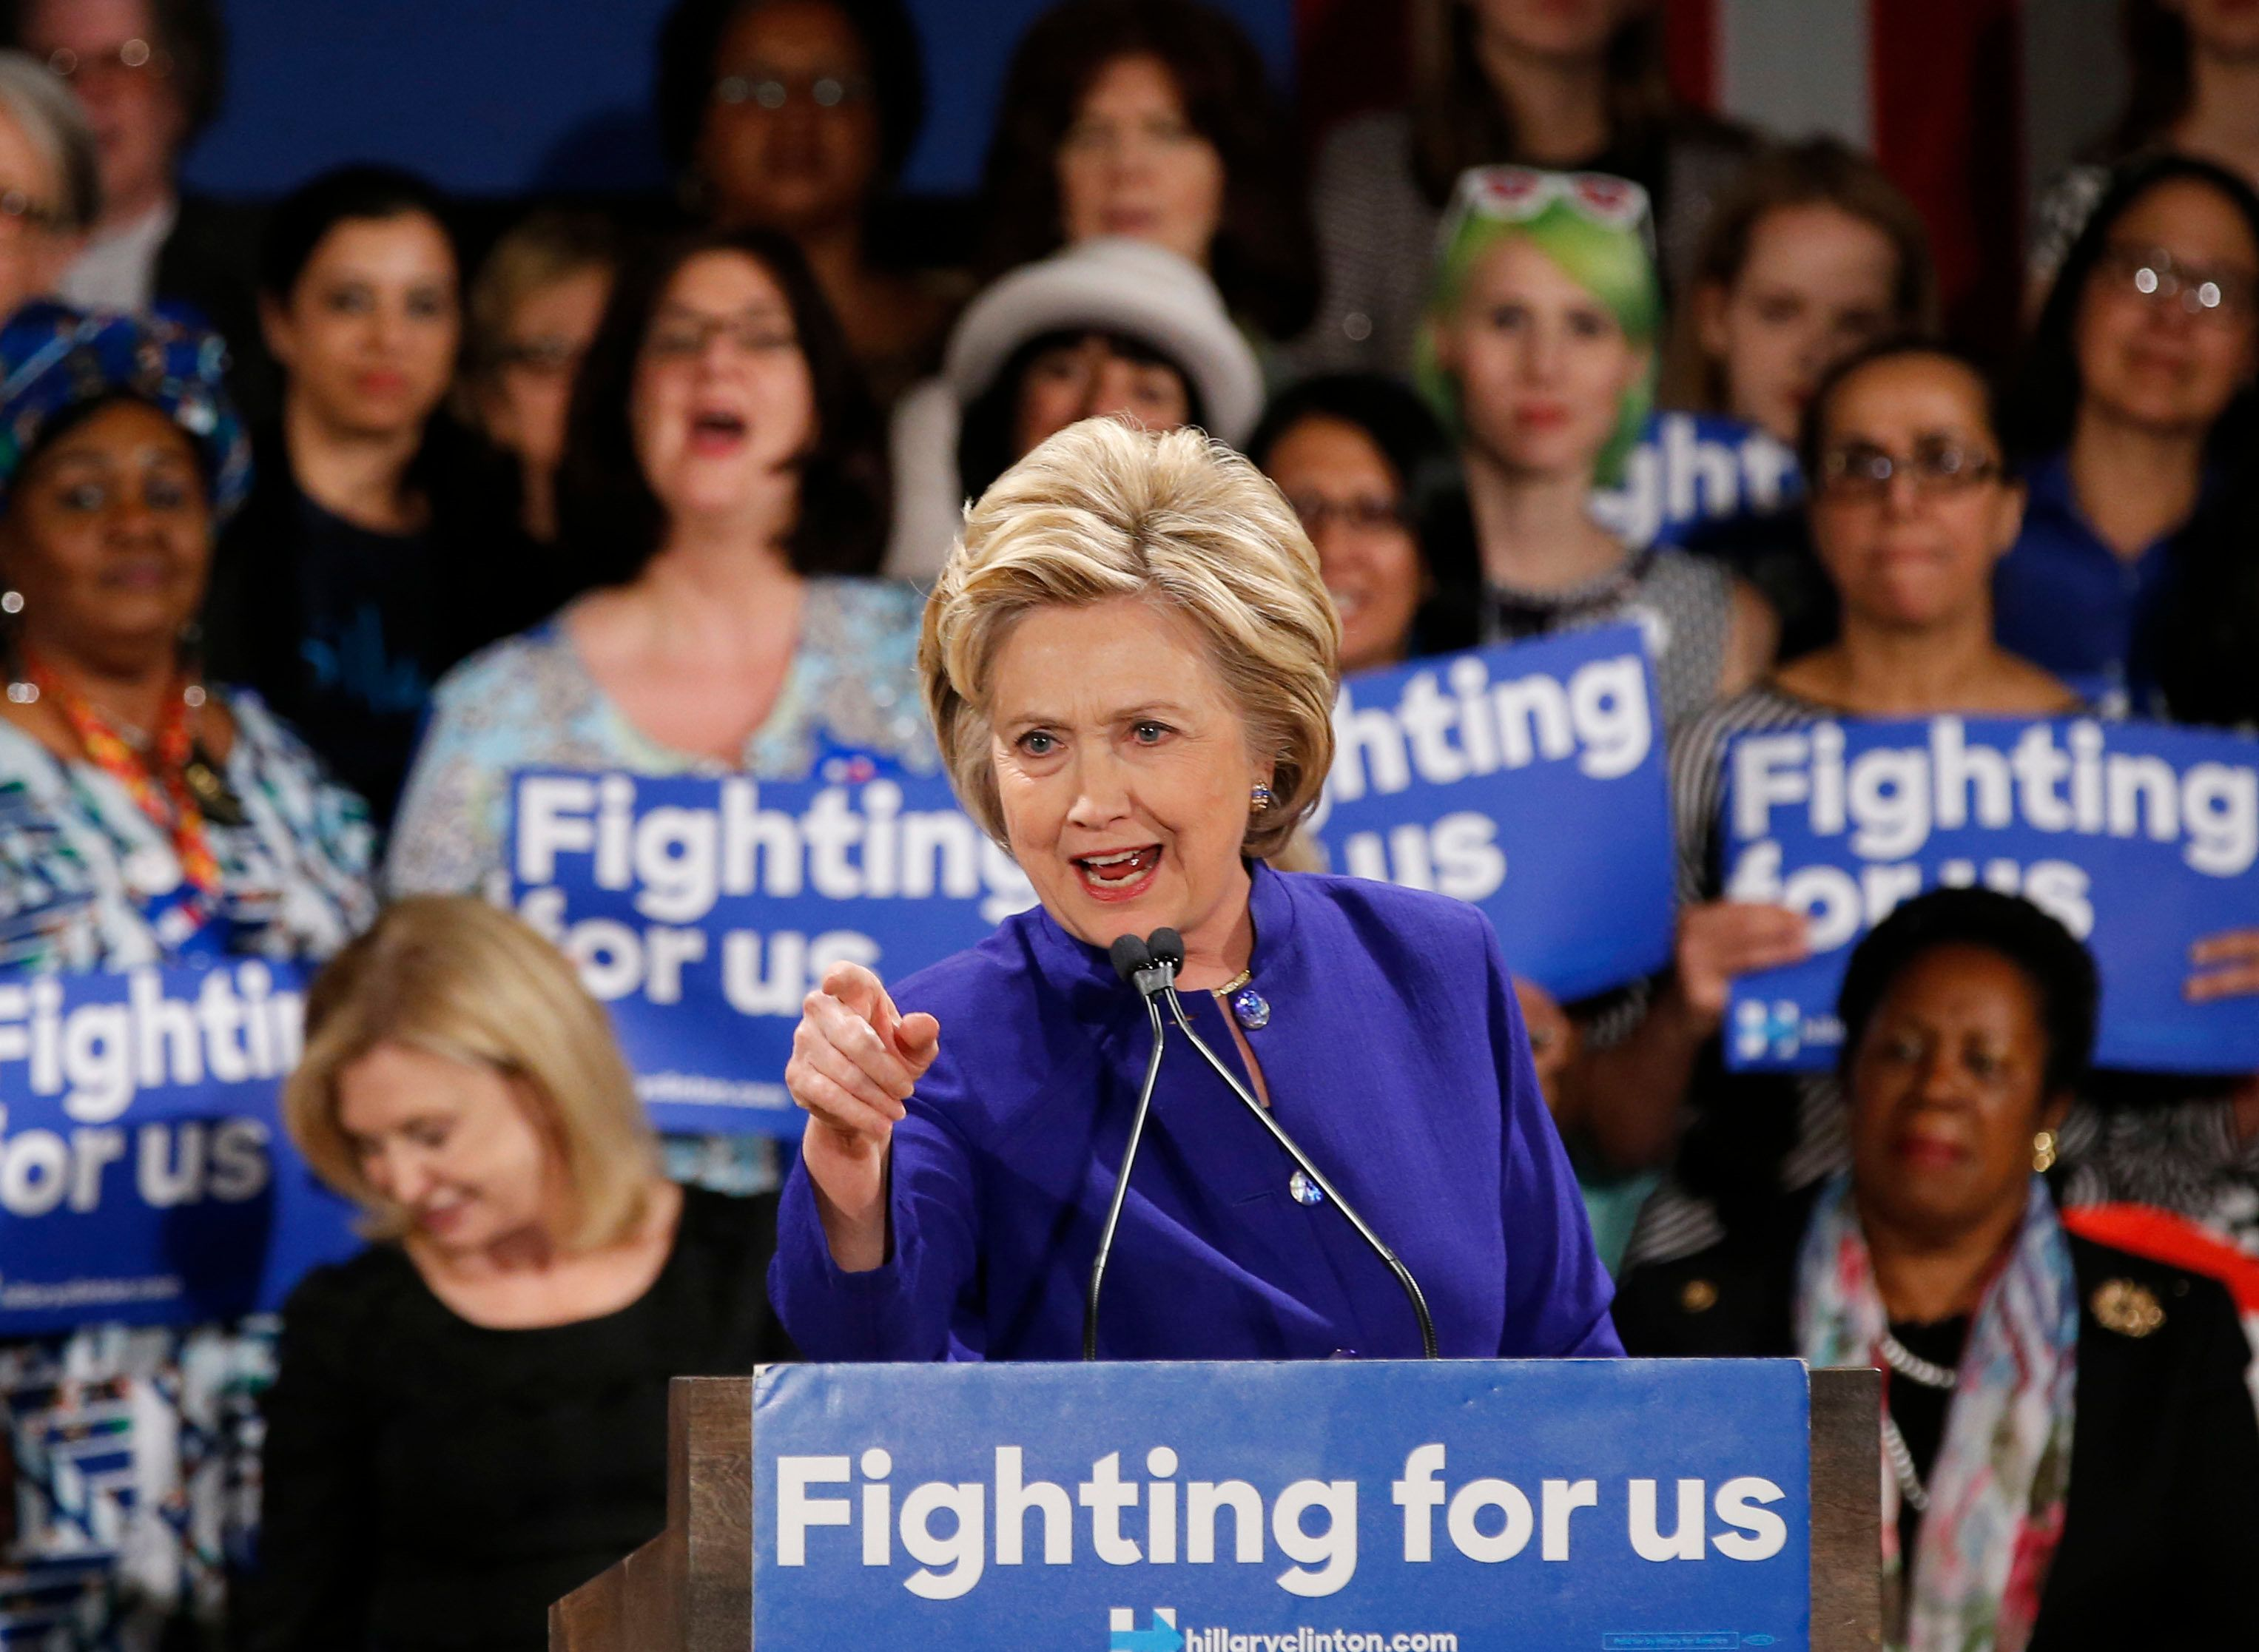 Democratic presidential candidate Hillary Clinton speaks at a Women for Hillary event at the New York Hilton hotel in midtown Manhattan one day ahead of the New York primary, Monday, April 18, 2016, in New York.  (AP Photo/Kathy Willens)